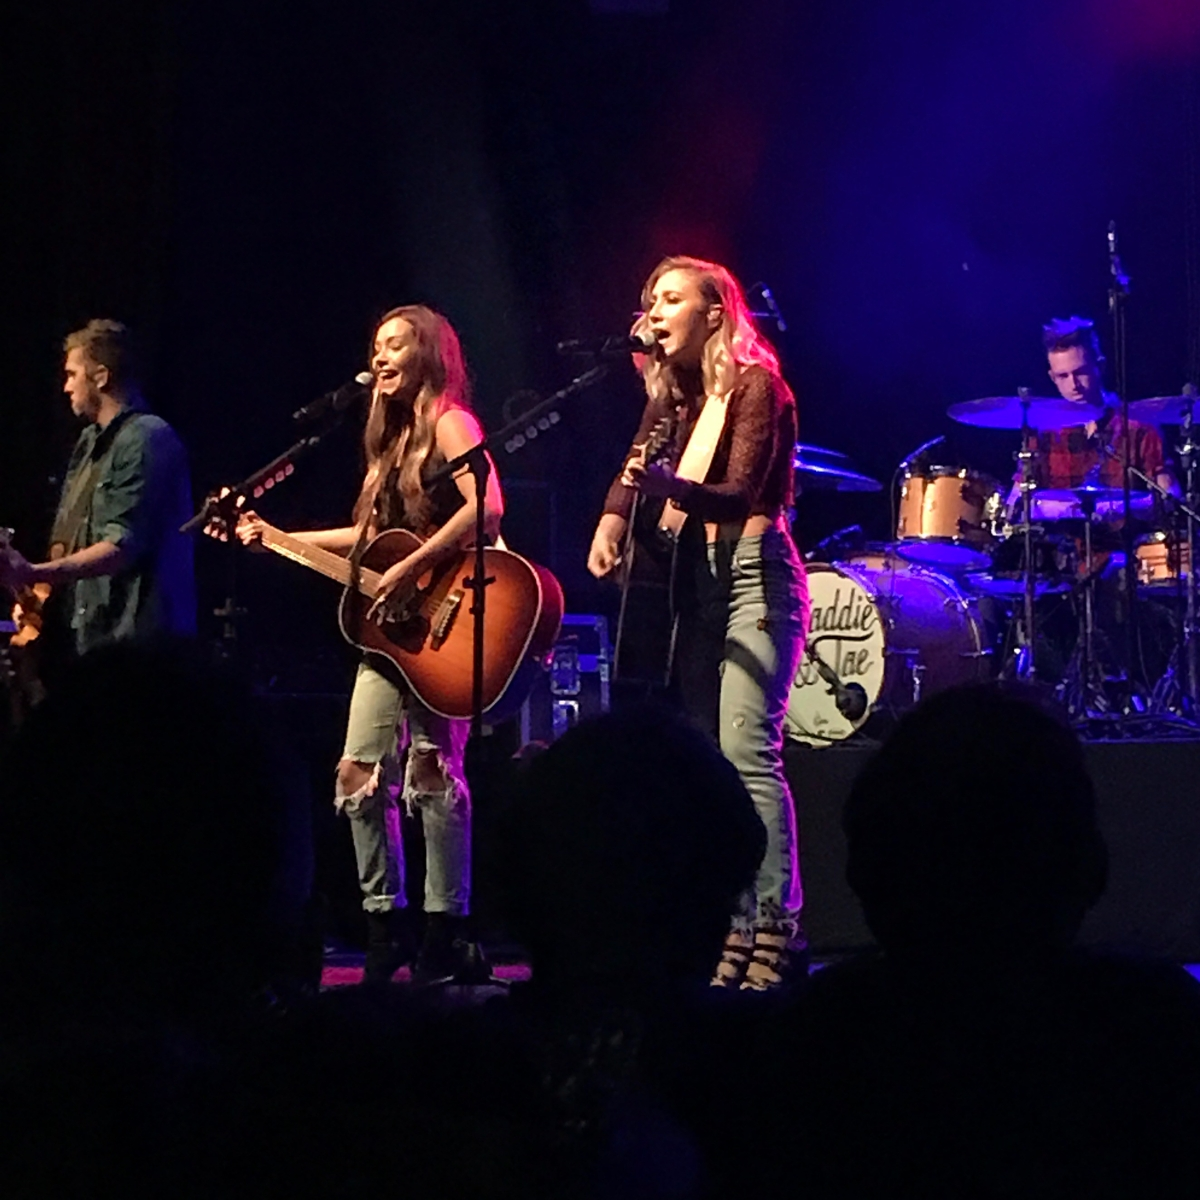 Gig Review: Maddie and Tae